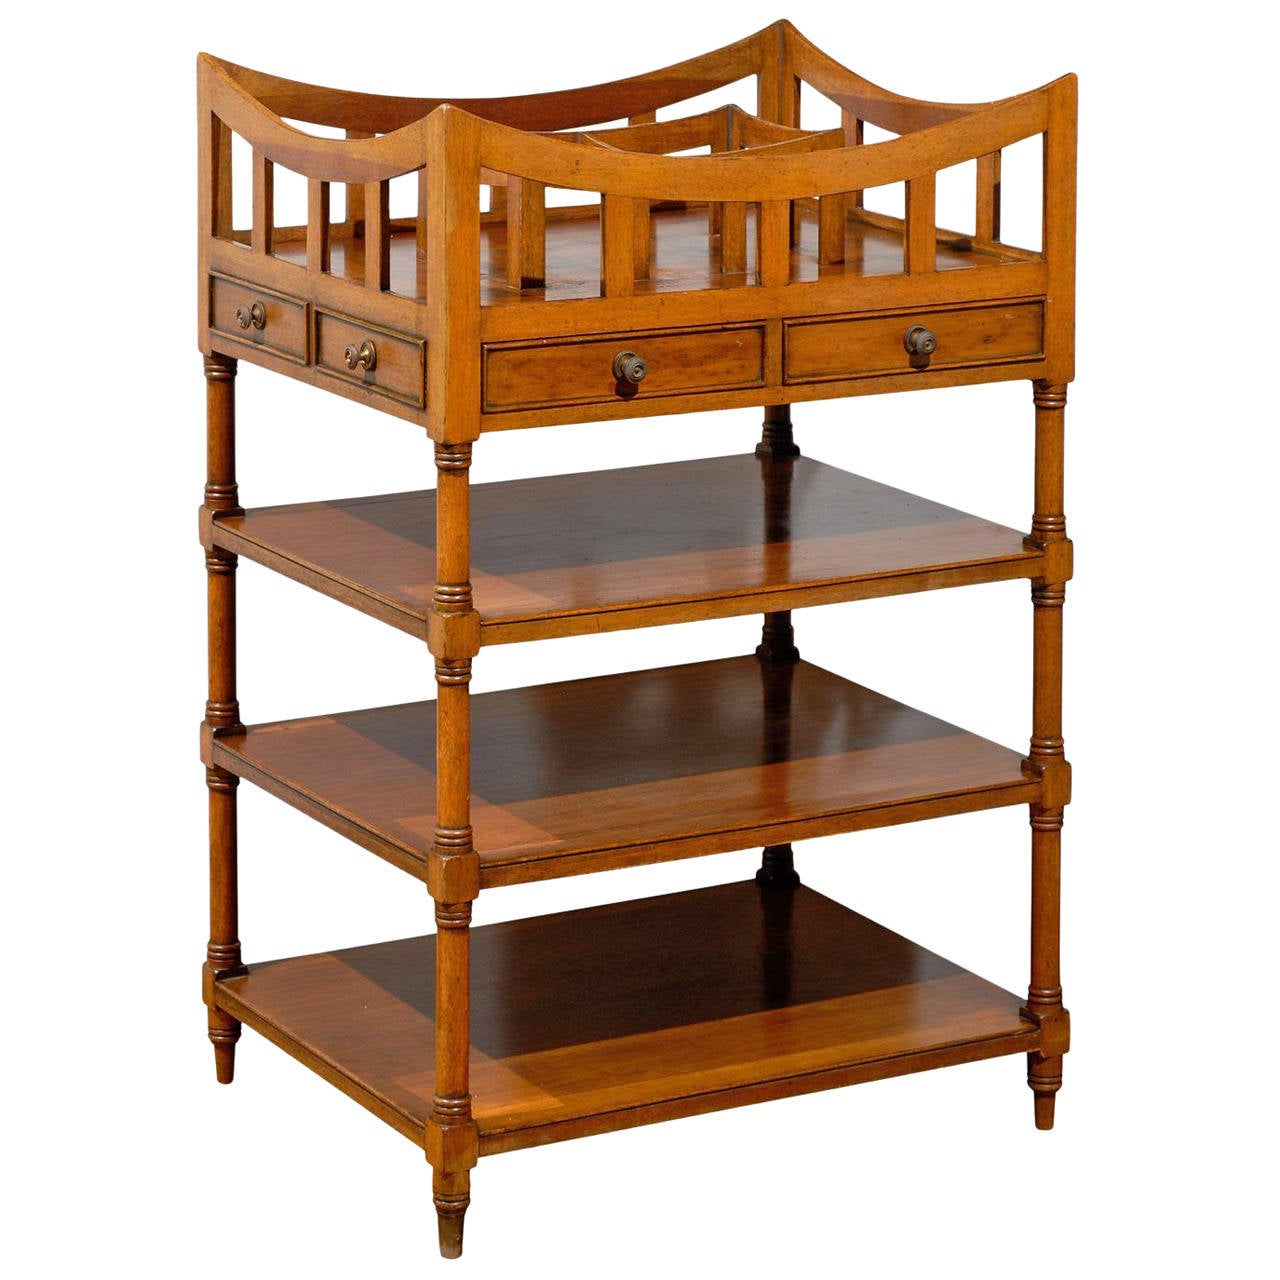 Italian 19th Century Walnut Tiered Étagère with Pierced Gallery and Shelves For Sale